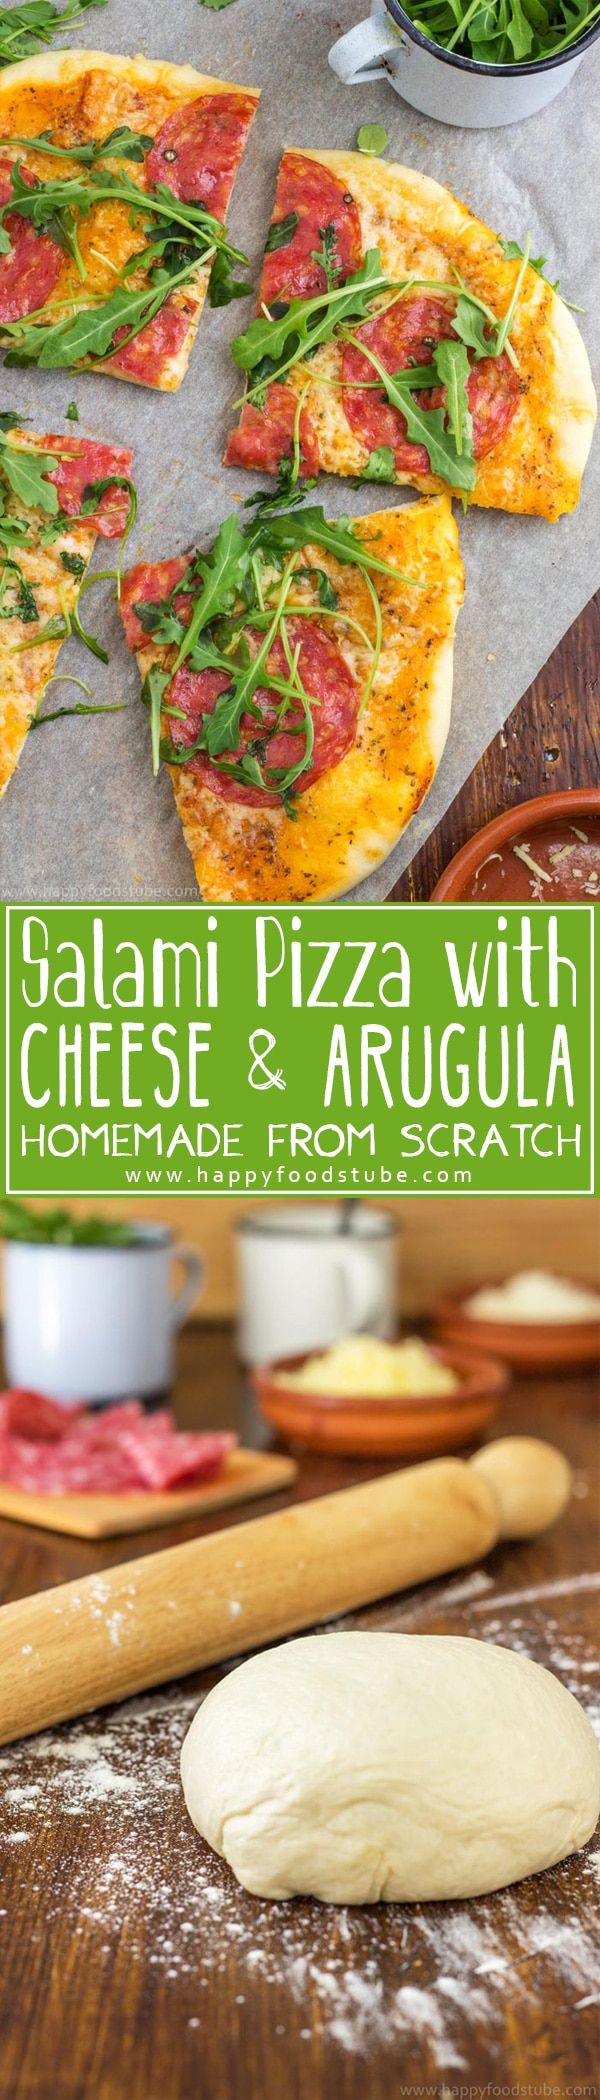 Salami Pizza with Cheese and Arugula Recipe - HappyFoods Tube